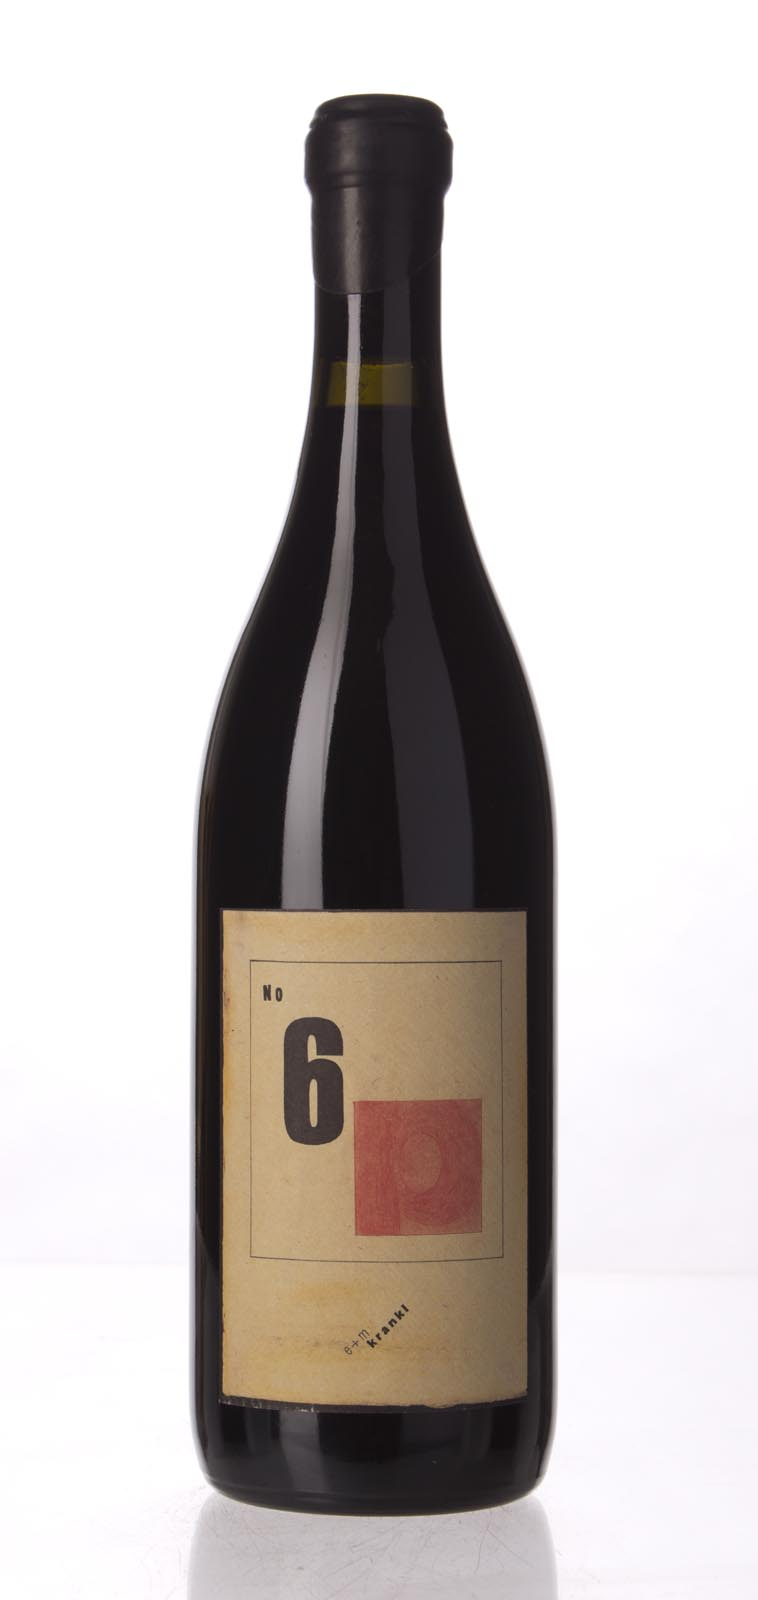 Sine Qua Non Pinot Noir #6 2001, 750mL (ST91) from The BPW - Merchants of rare and fine wines.